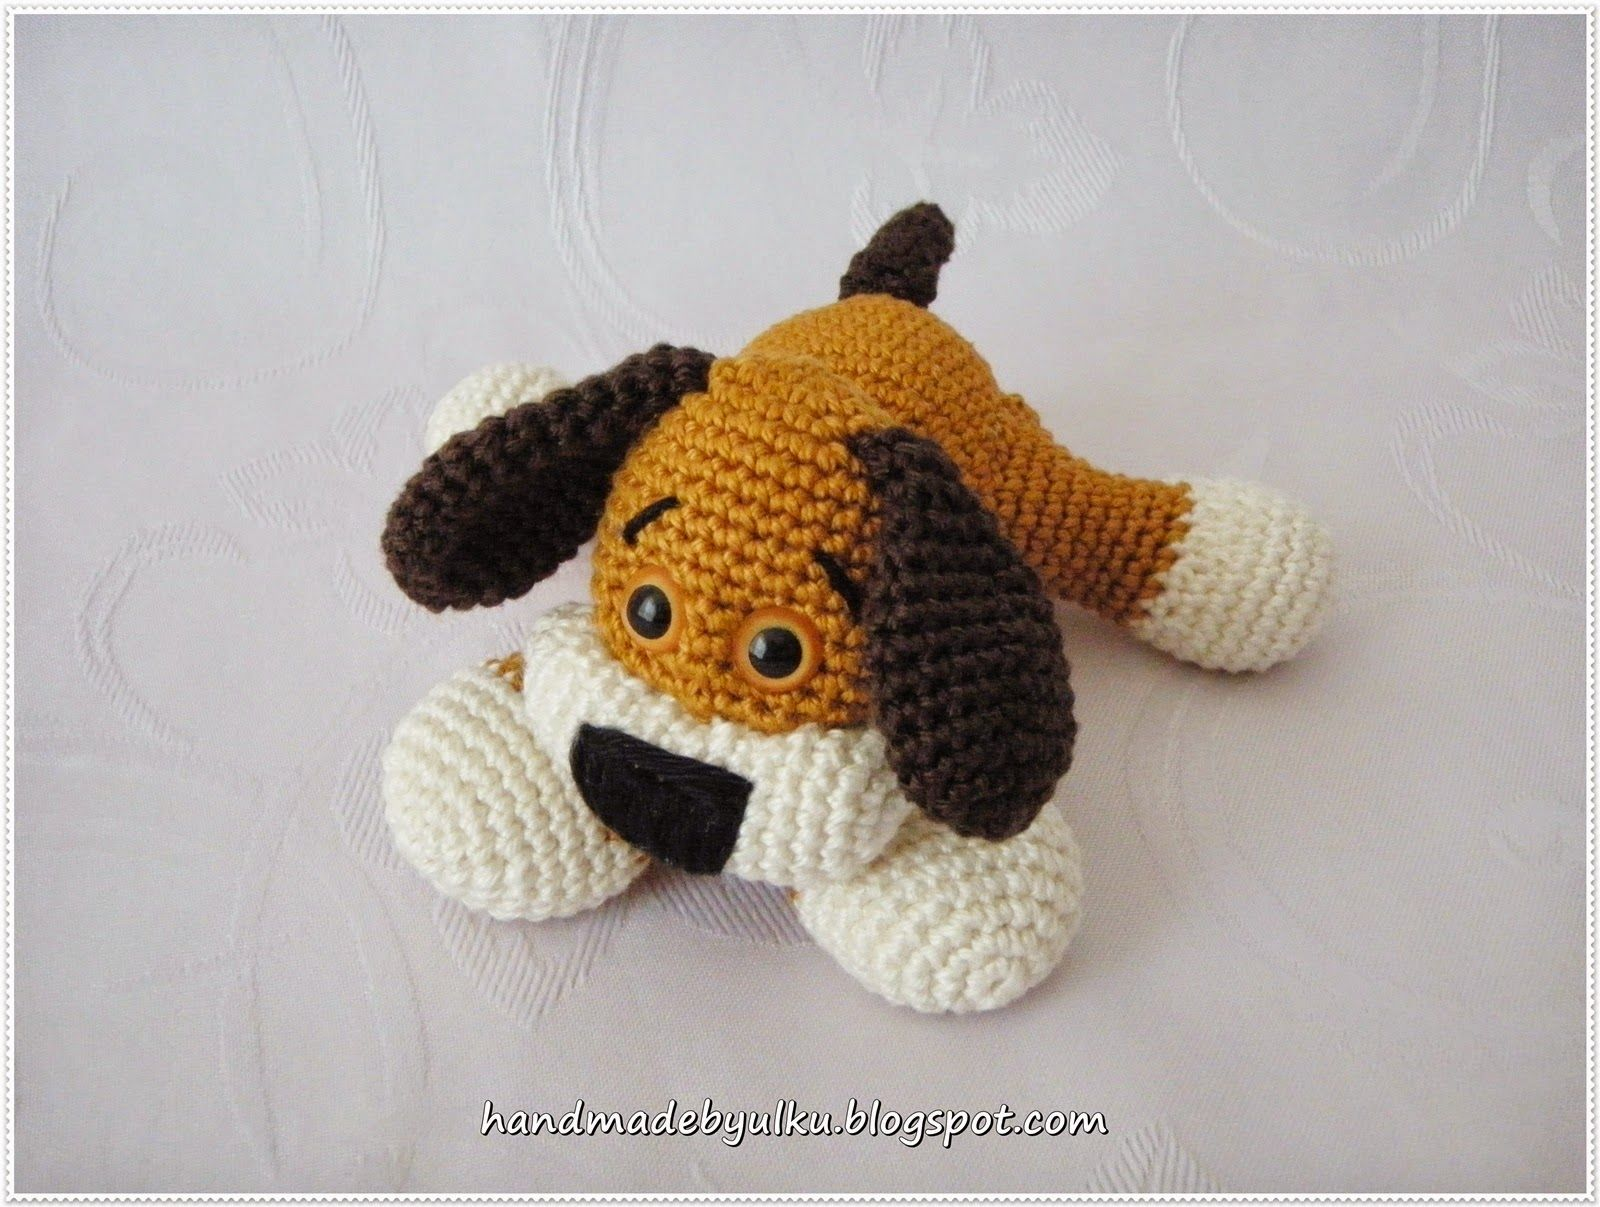 Amigurumi Animals For Beginners : Amigurumi Dog - FREE Crochet Pattern / Tutorial by ...